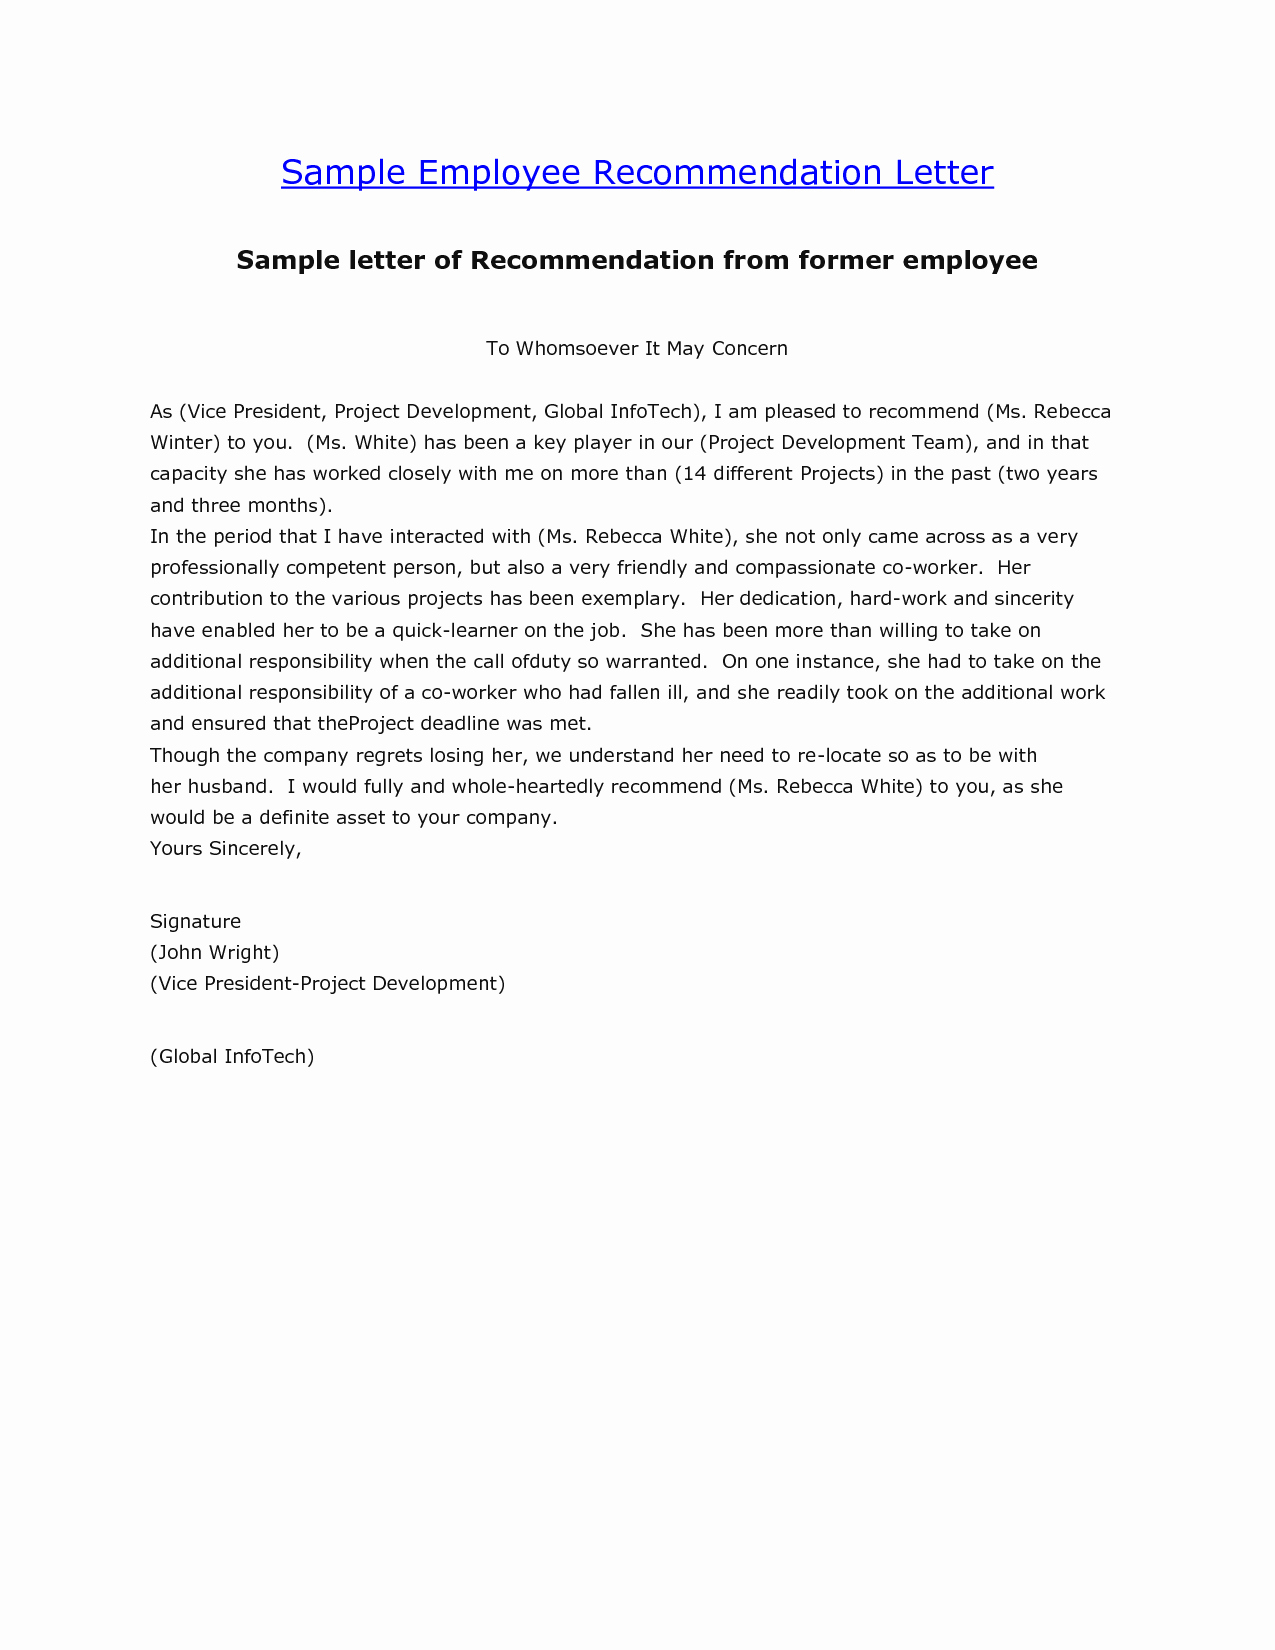 Samples Of Employee Reference Letters Luxury Letter Re Mendation Sample Employment